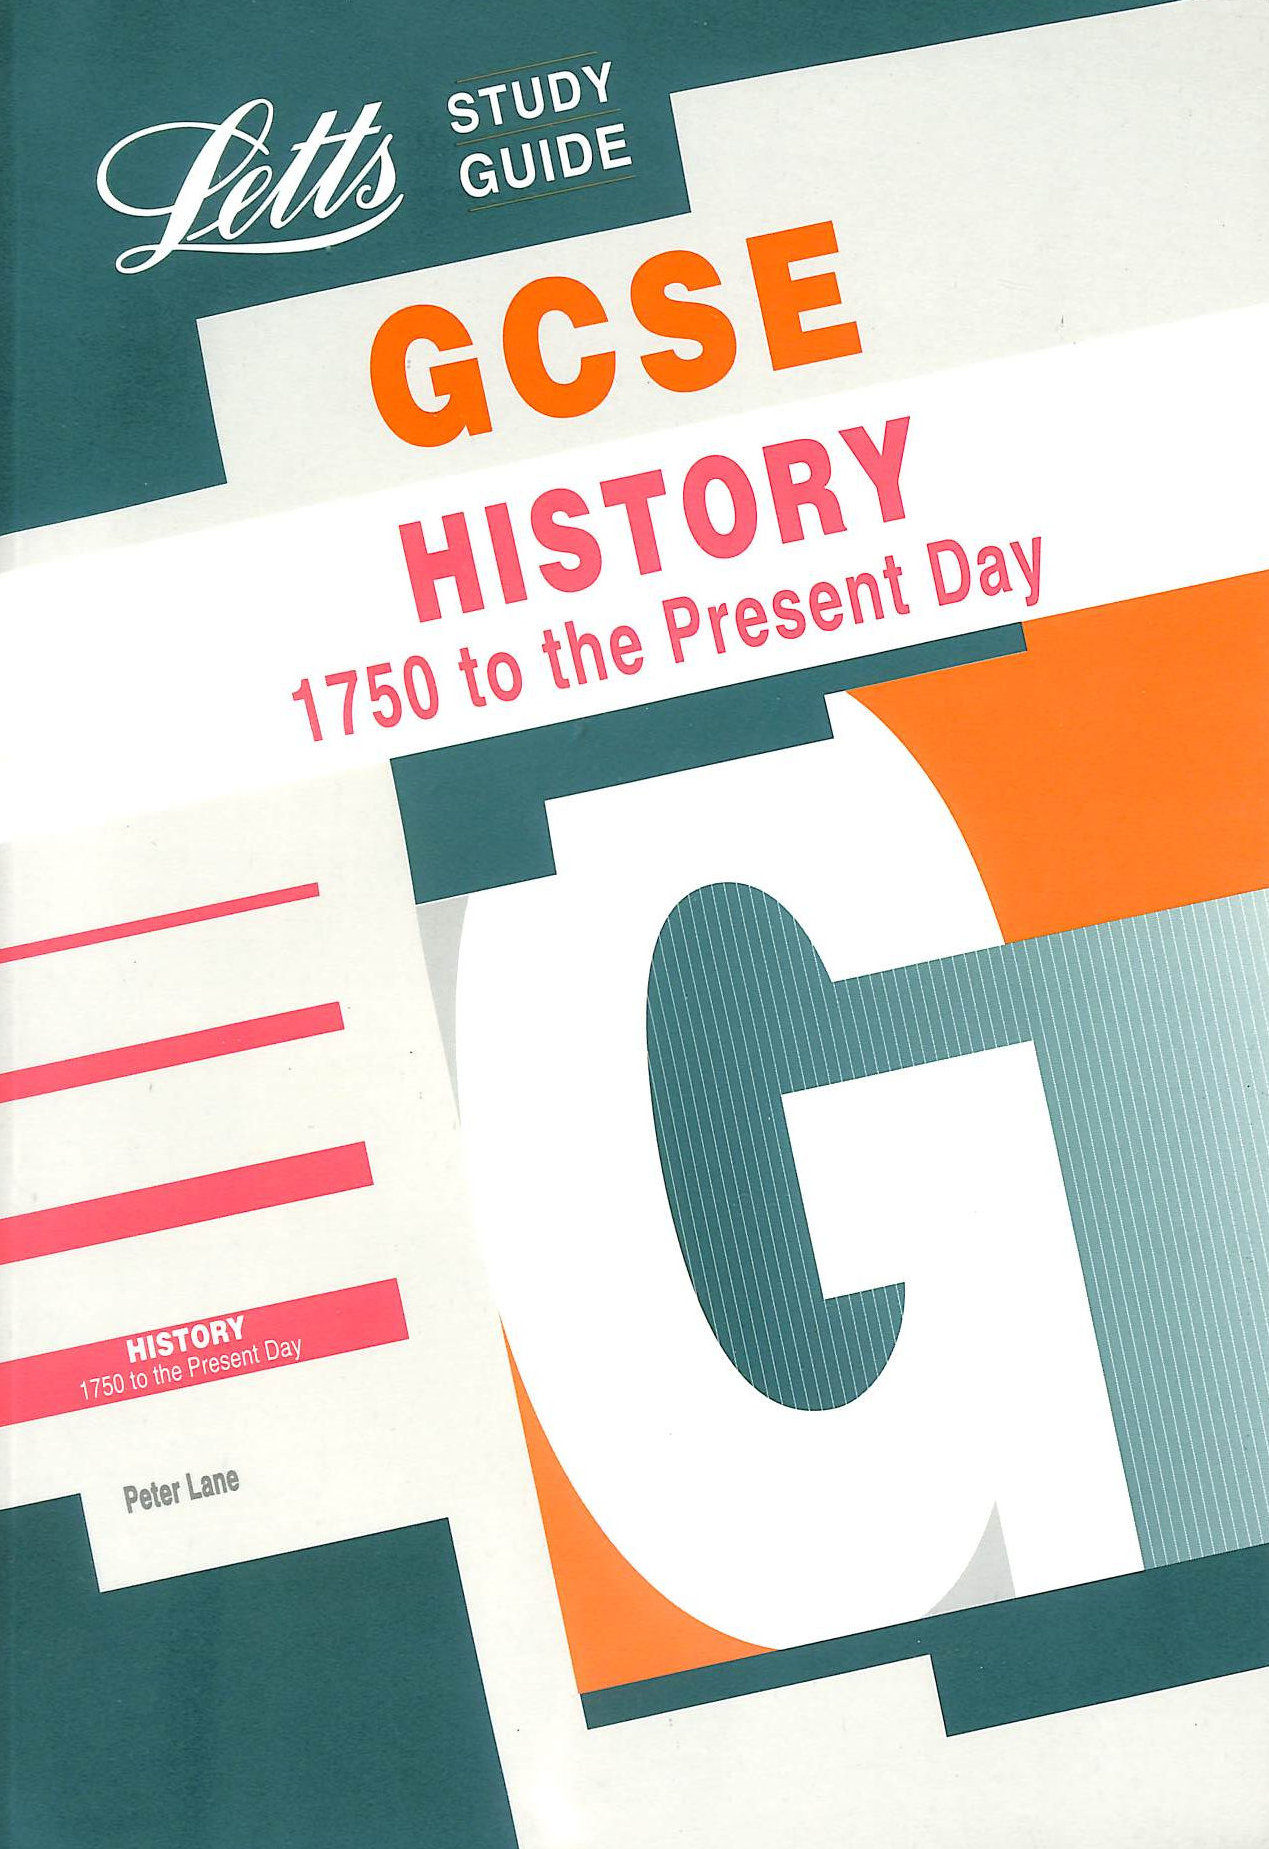 Image for GCSE History: 1750 to the Present Day (GCSE Study Guide)